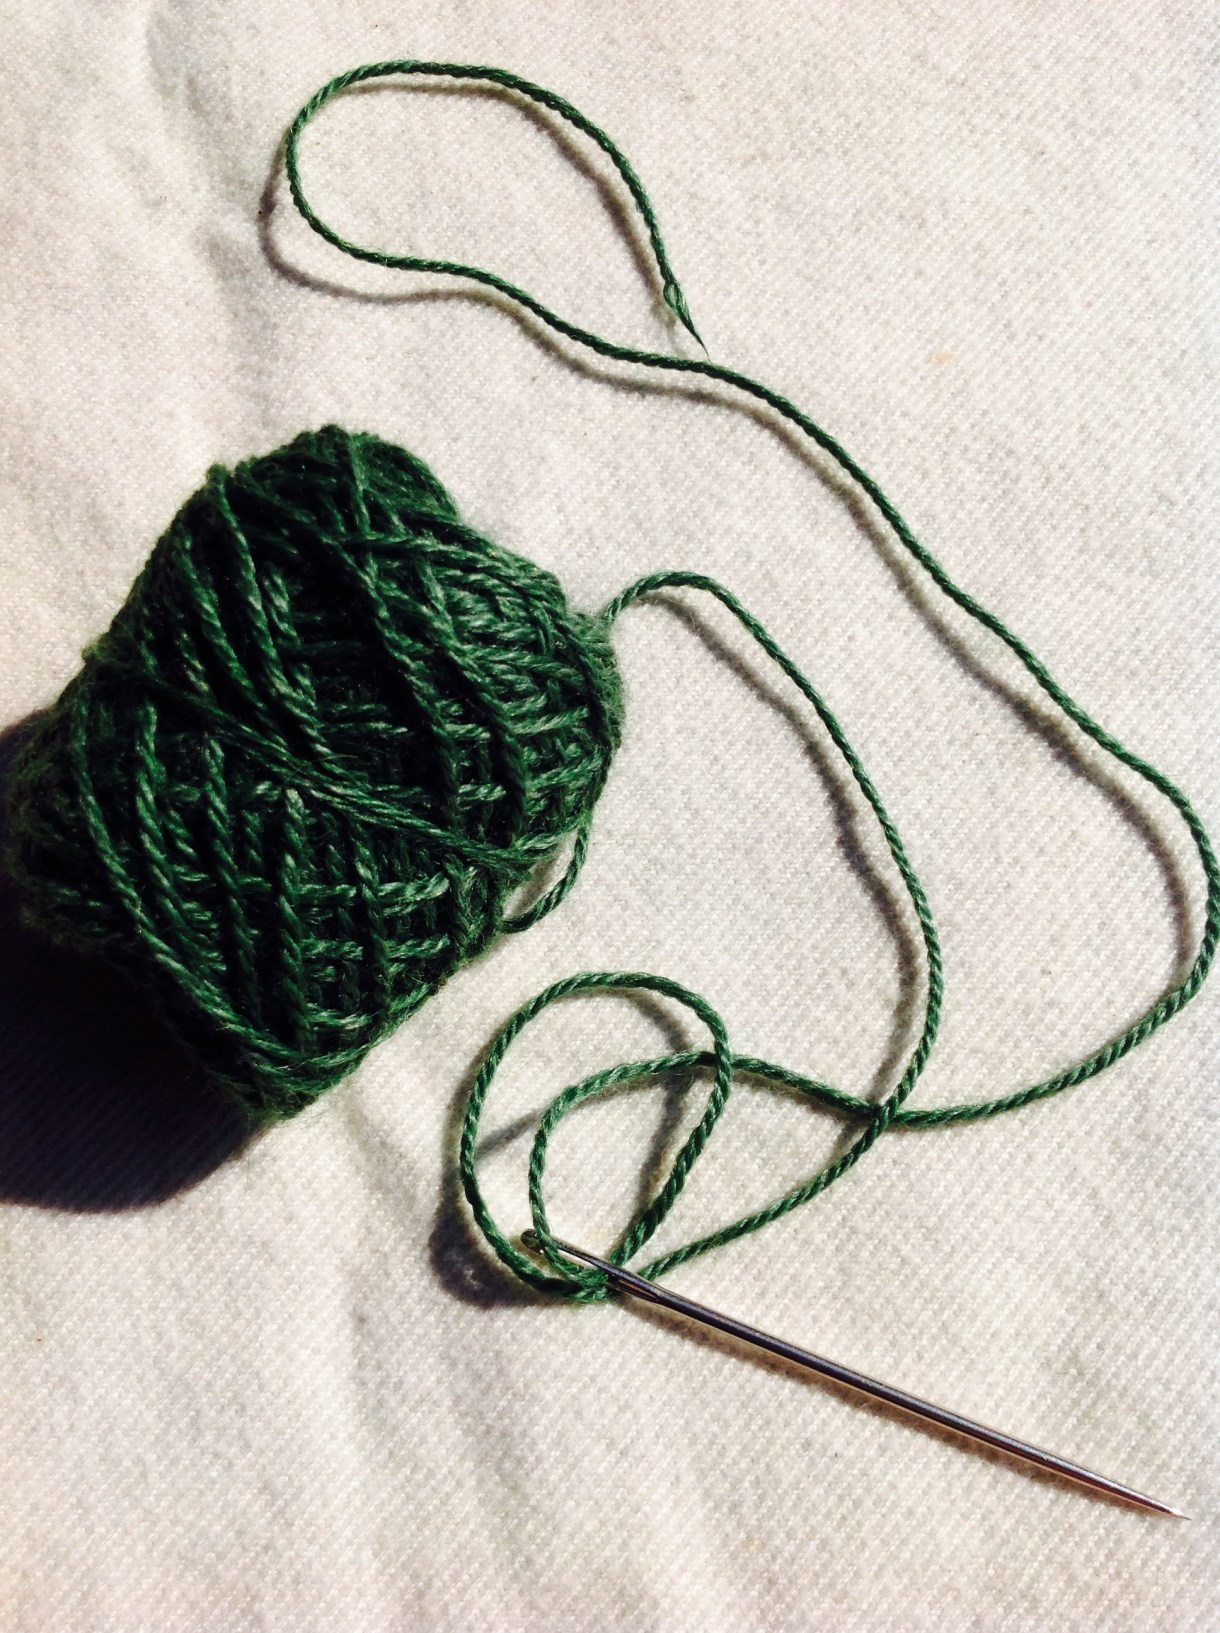 Lessons from sweater seaming. AKA how NOT to seam your sweater.